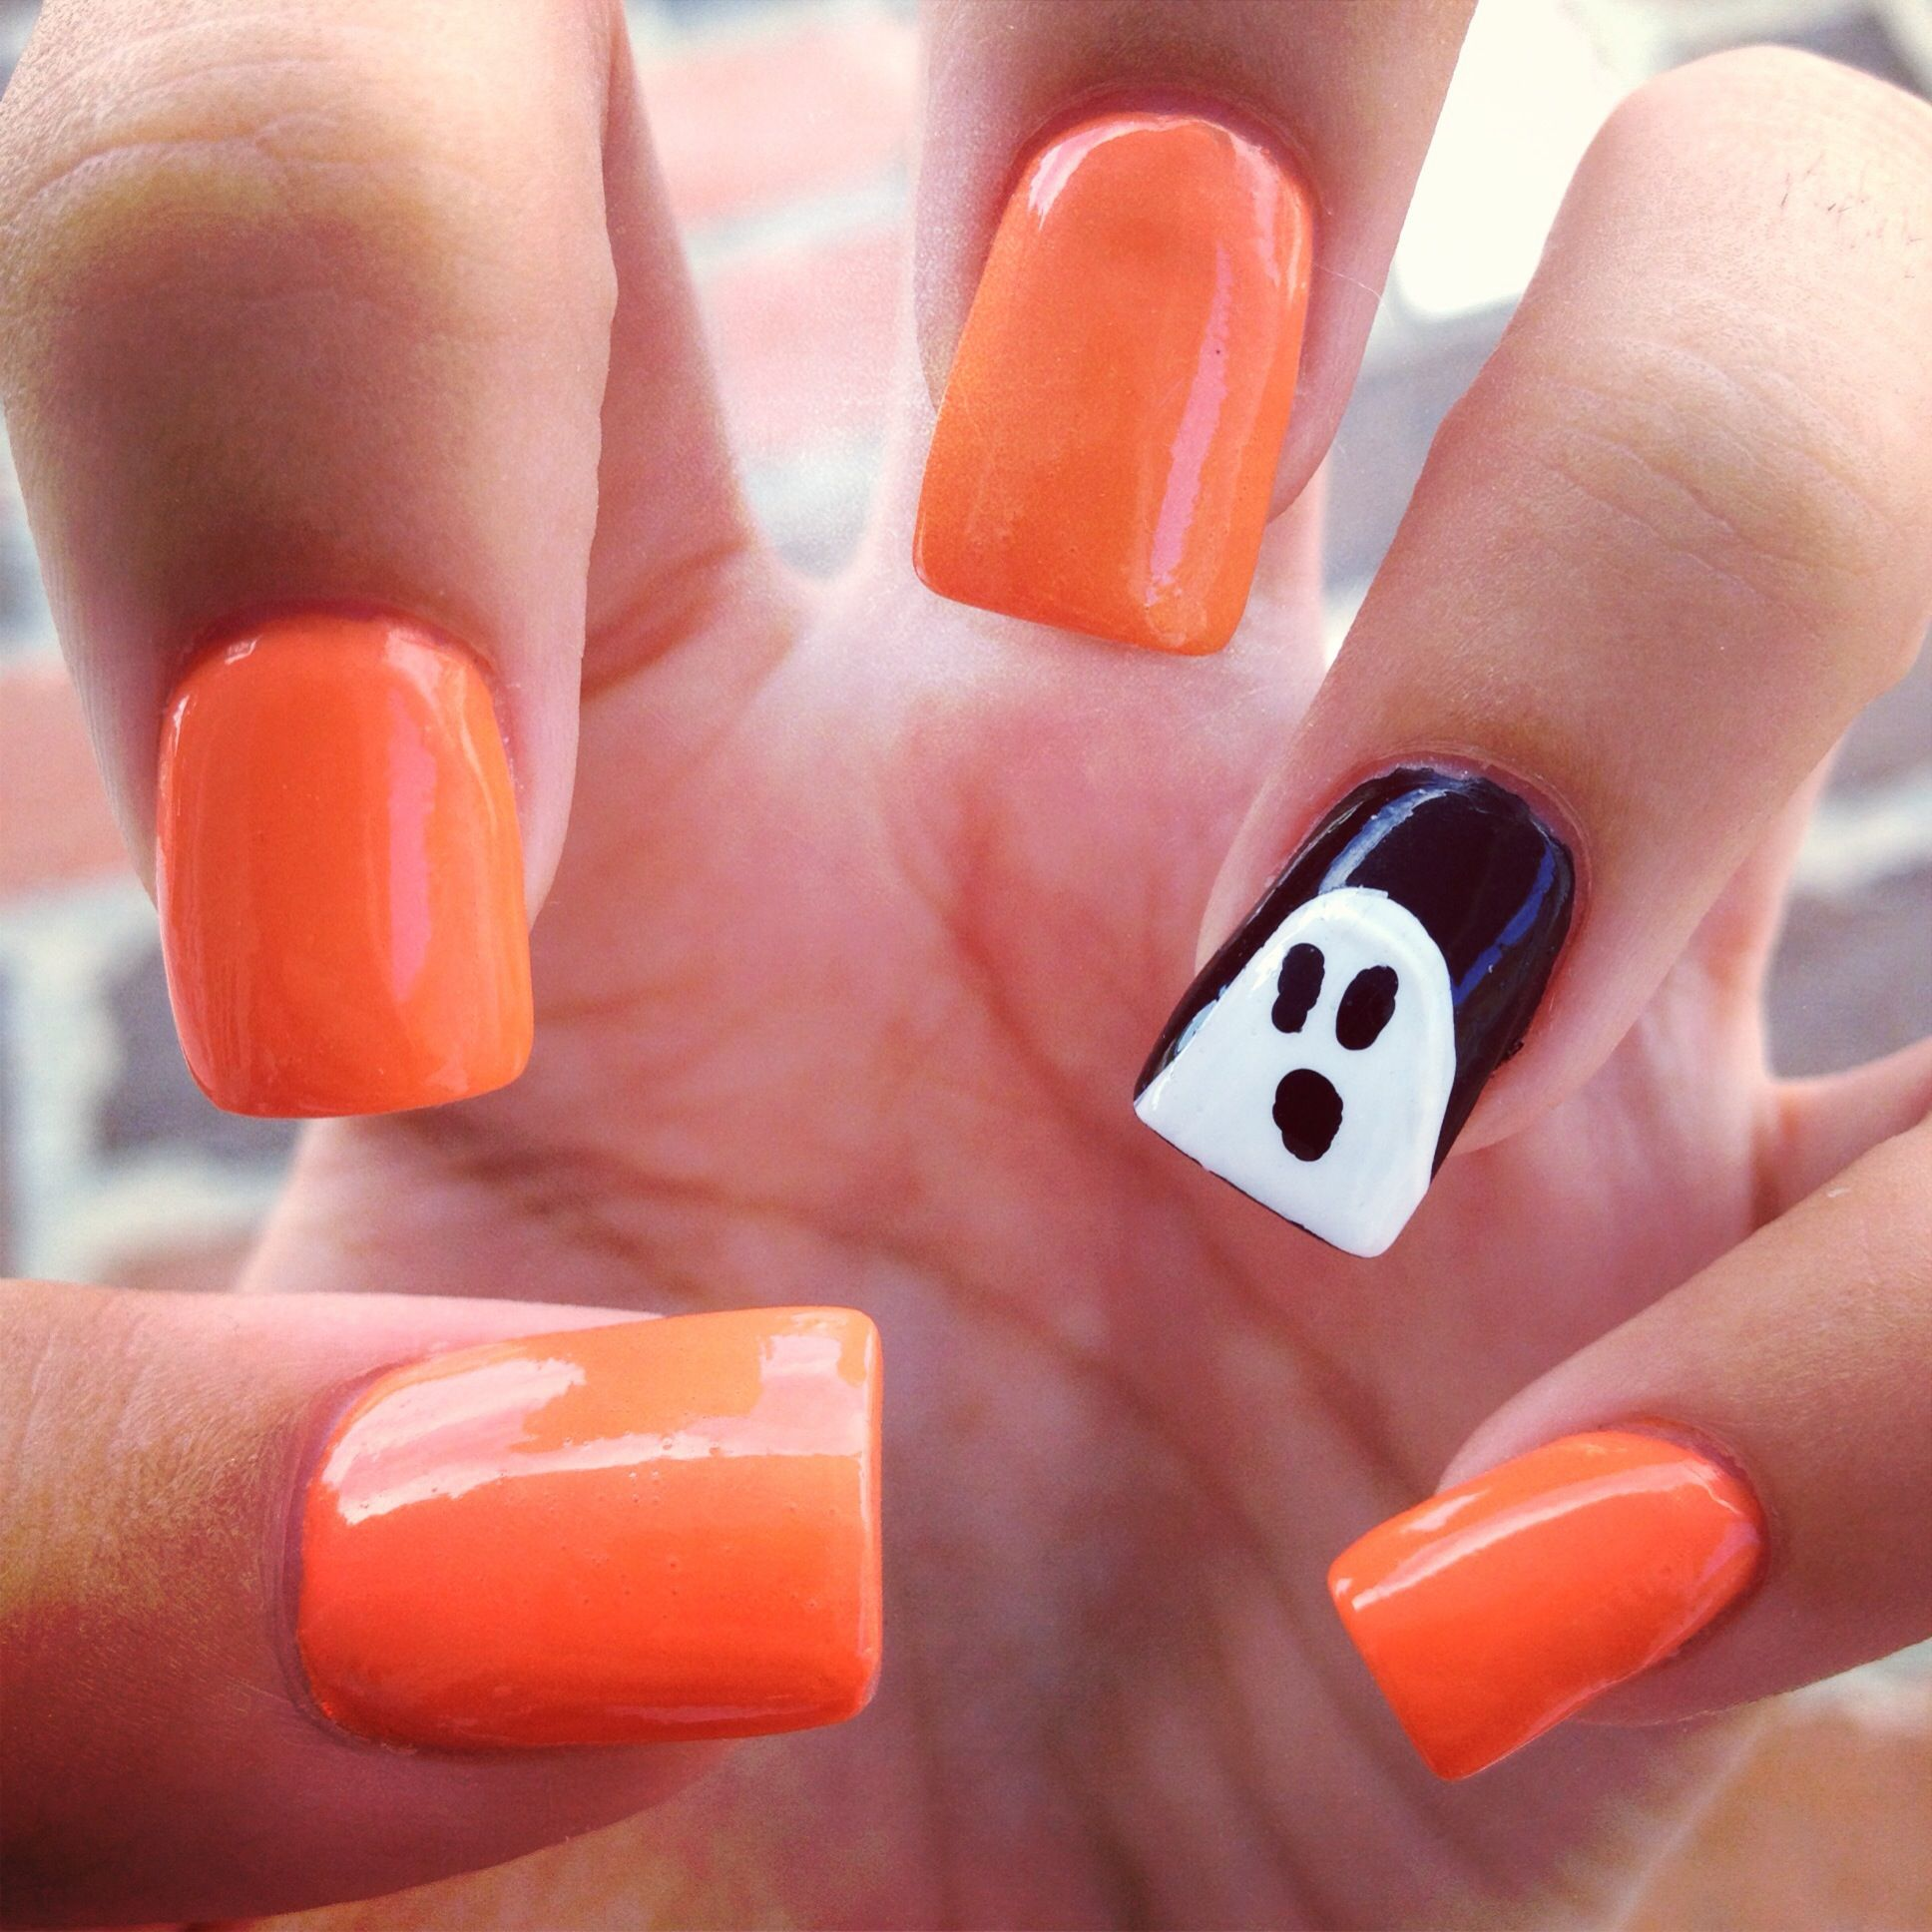 Halloween nails #acrylic #nails #ghost #festive #halloween ...